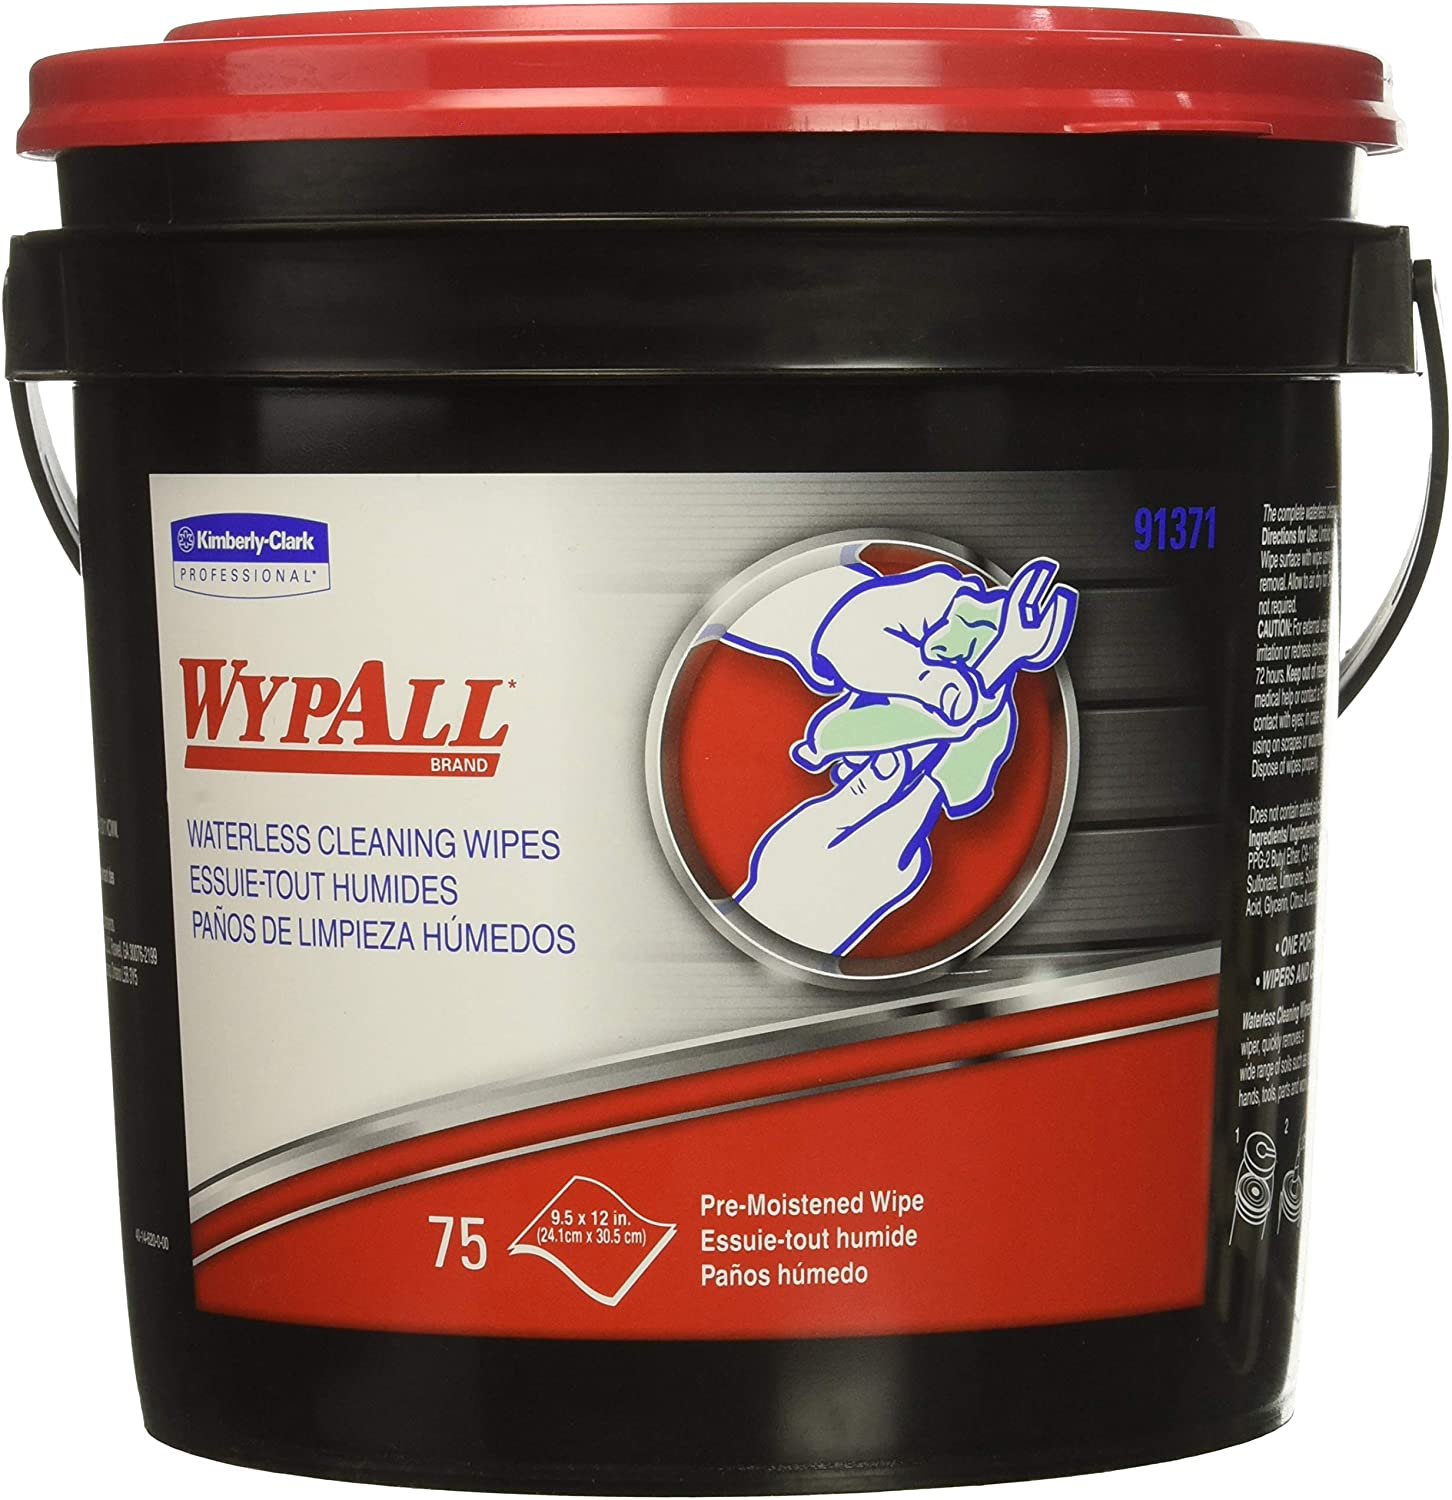 Kimberly-Clark KIM91371EA-KIMBERLY Clark WYPALL Waterless Cleaning Wipes, Red